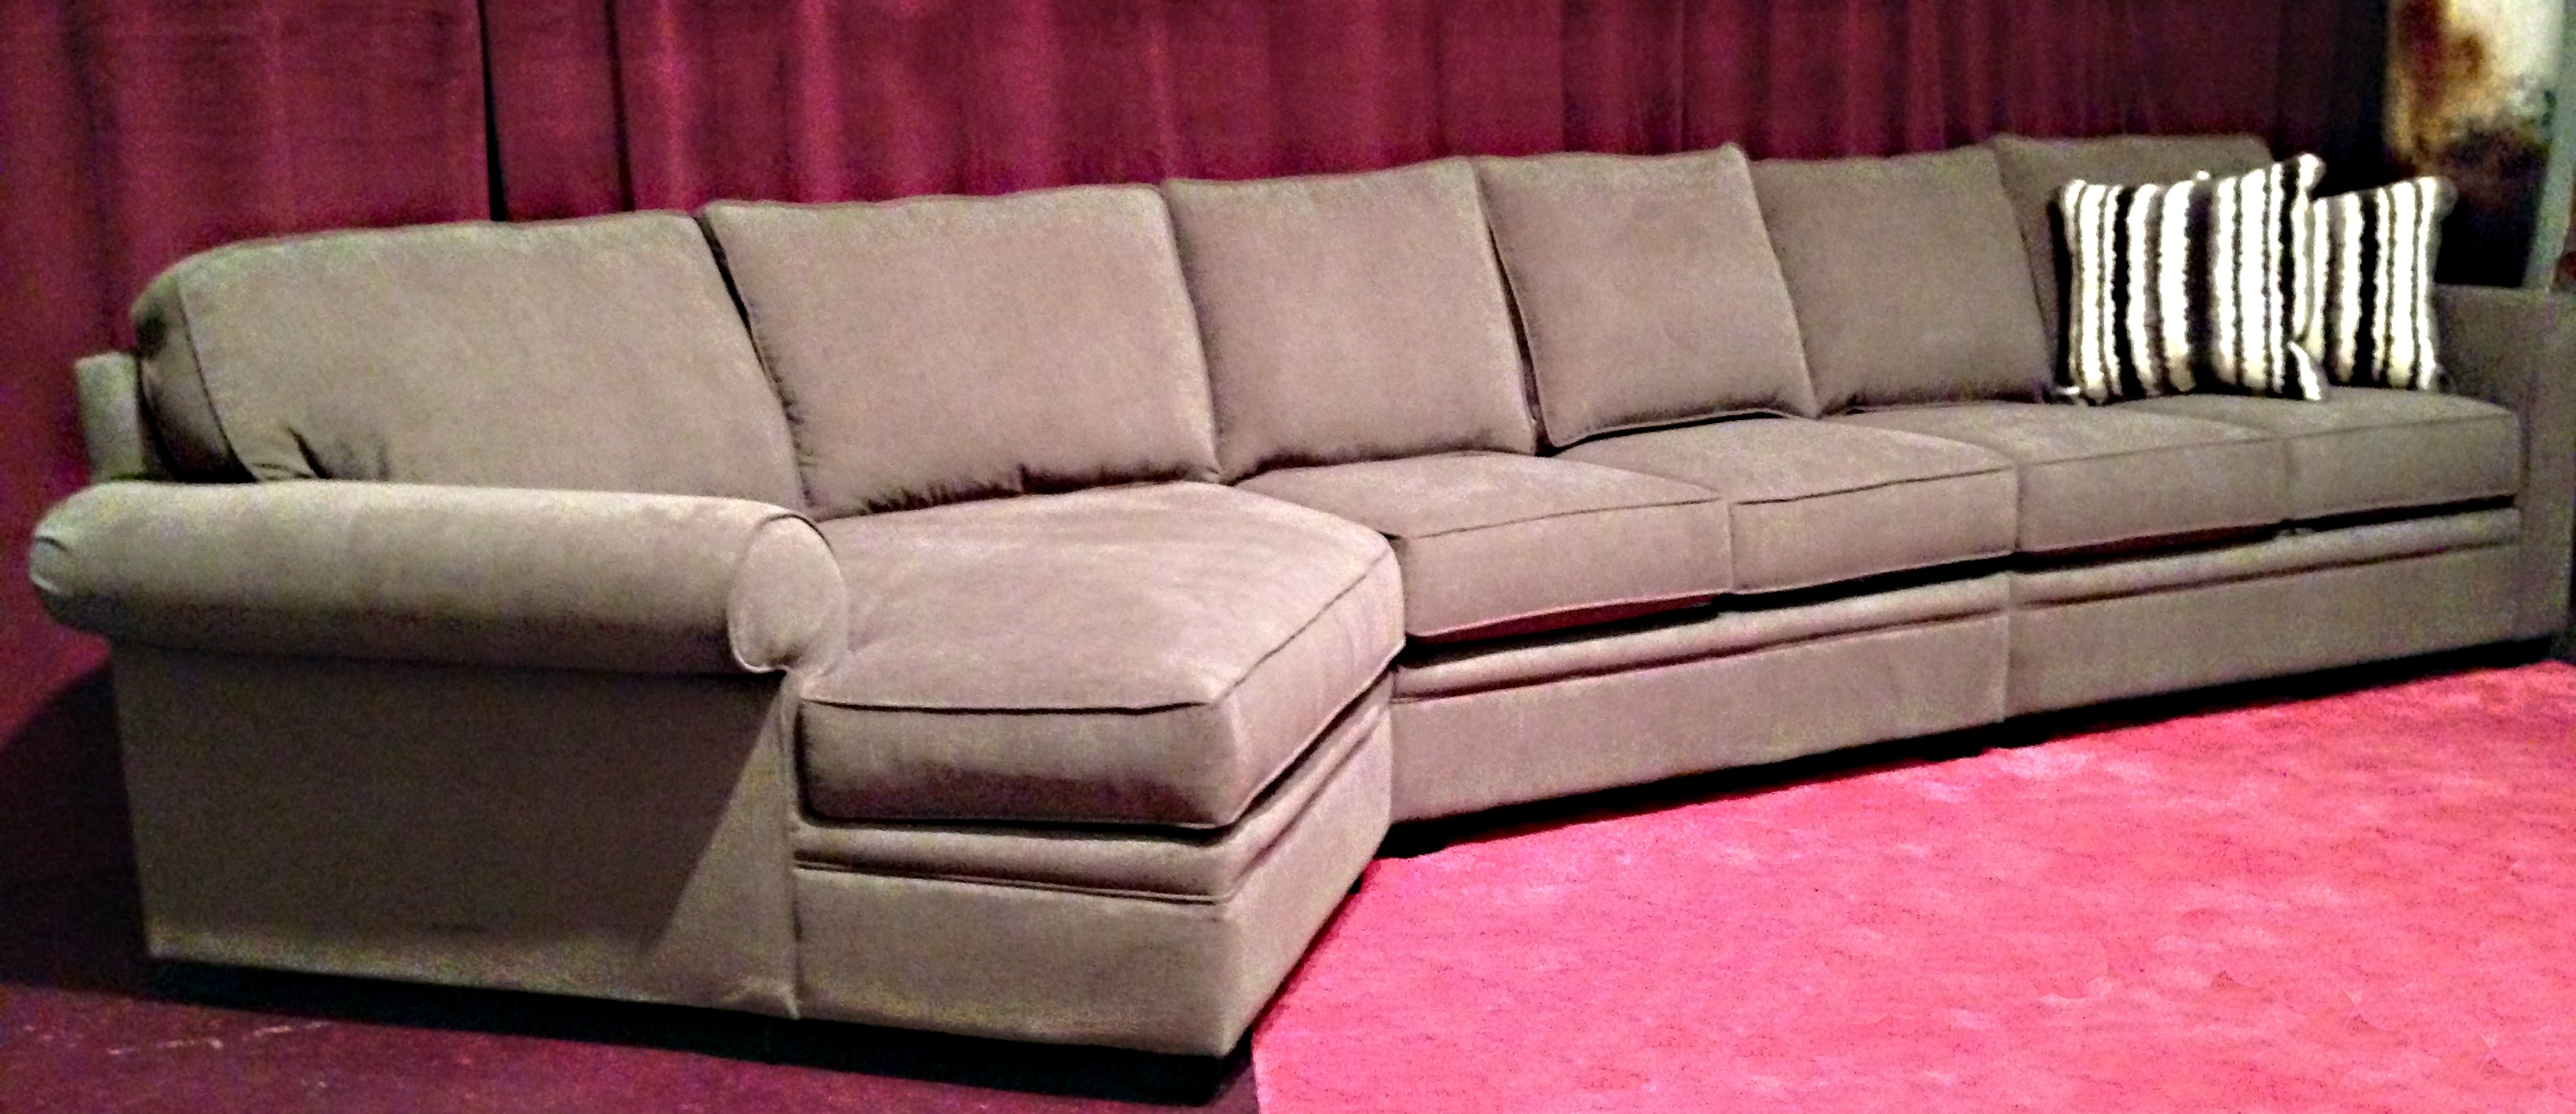 Furniture: Comfy Design Of Oversized Couch For Charming Living Room In Sectional Sofas At Amazon (Image 6 of 10)